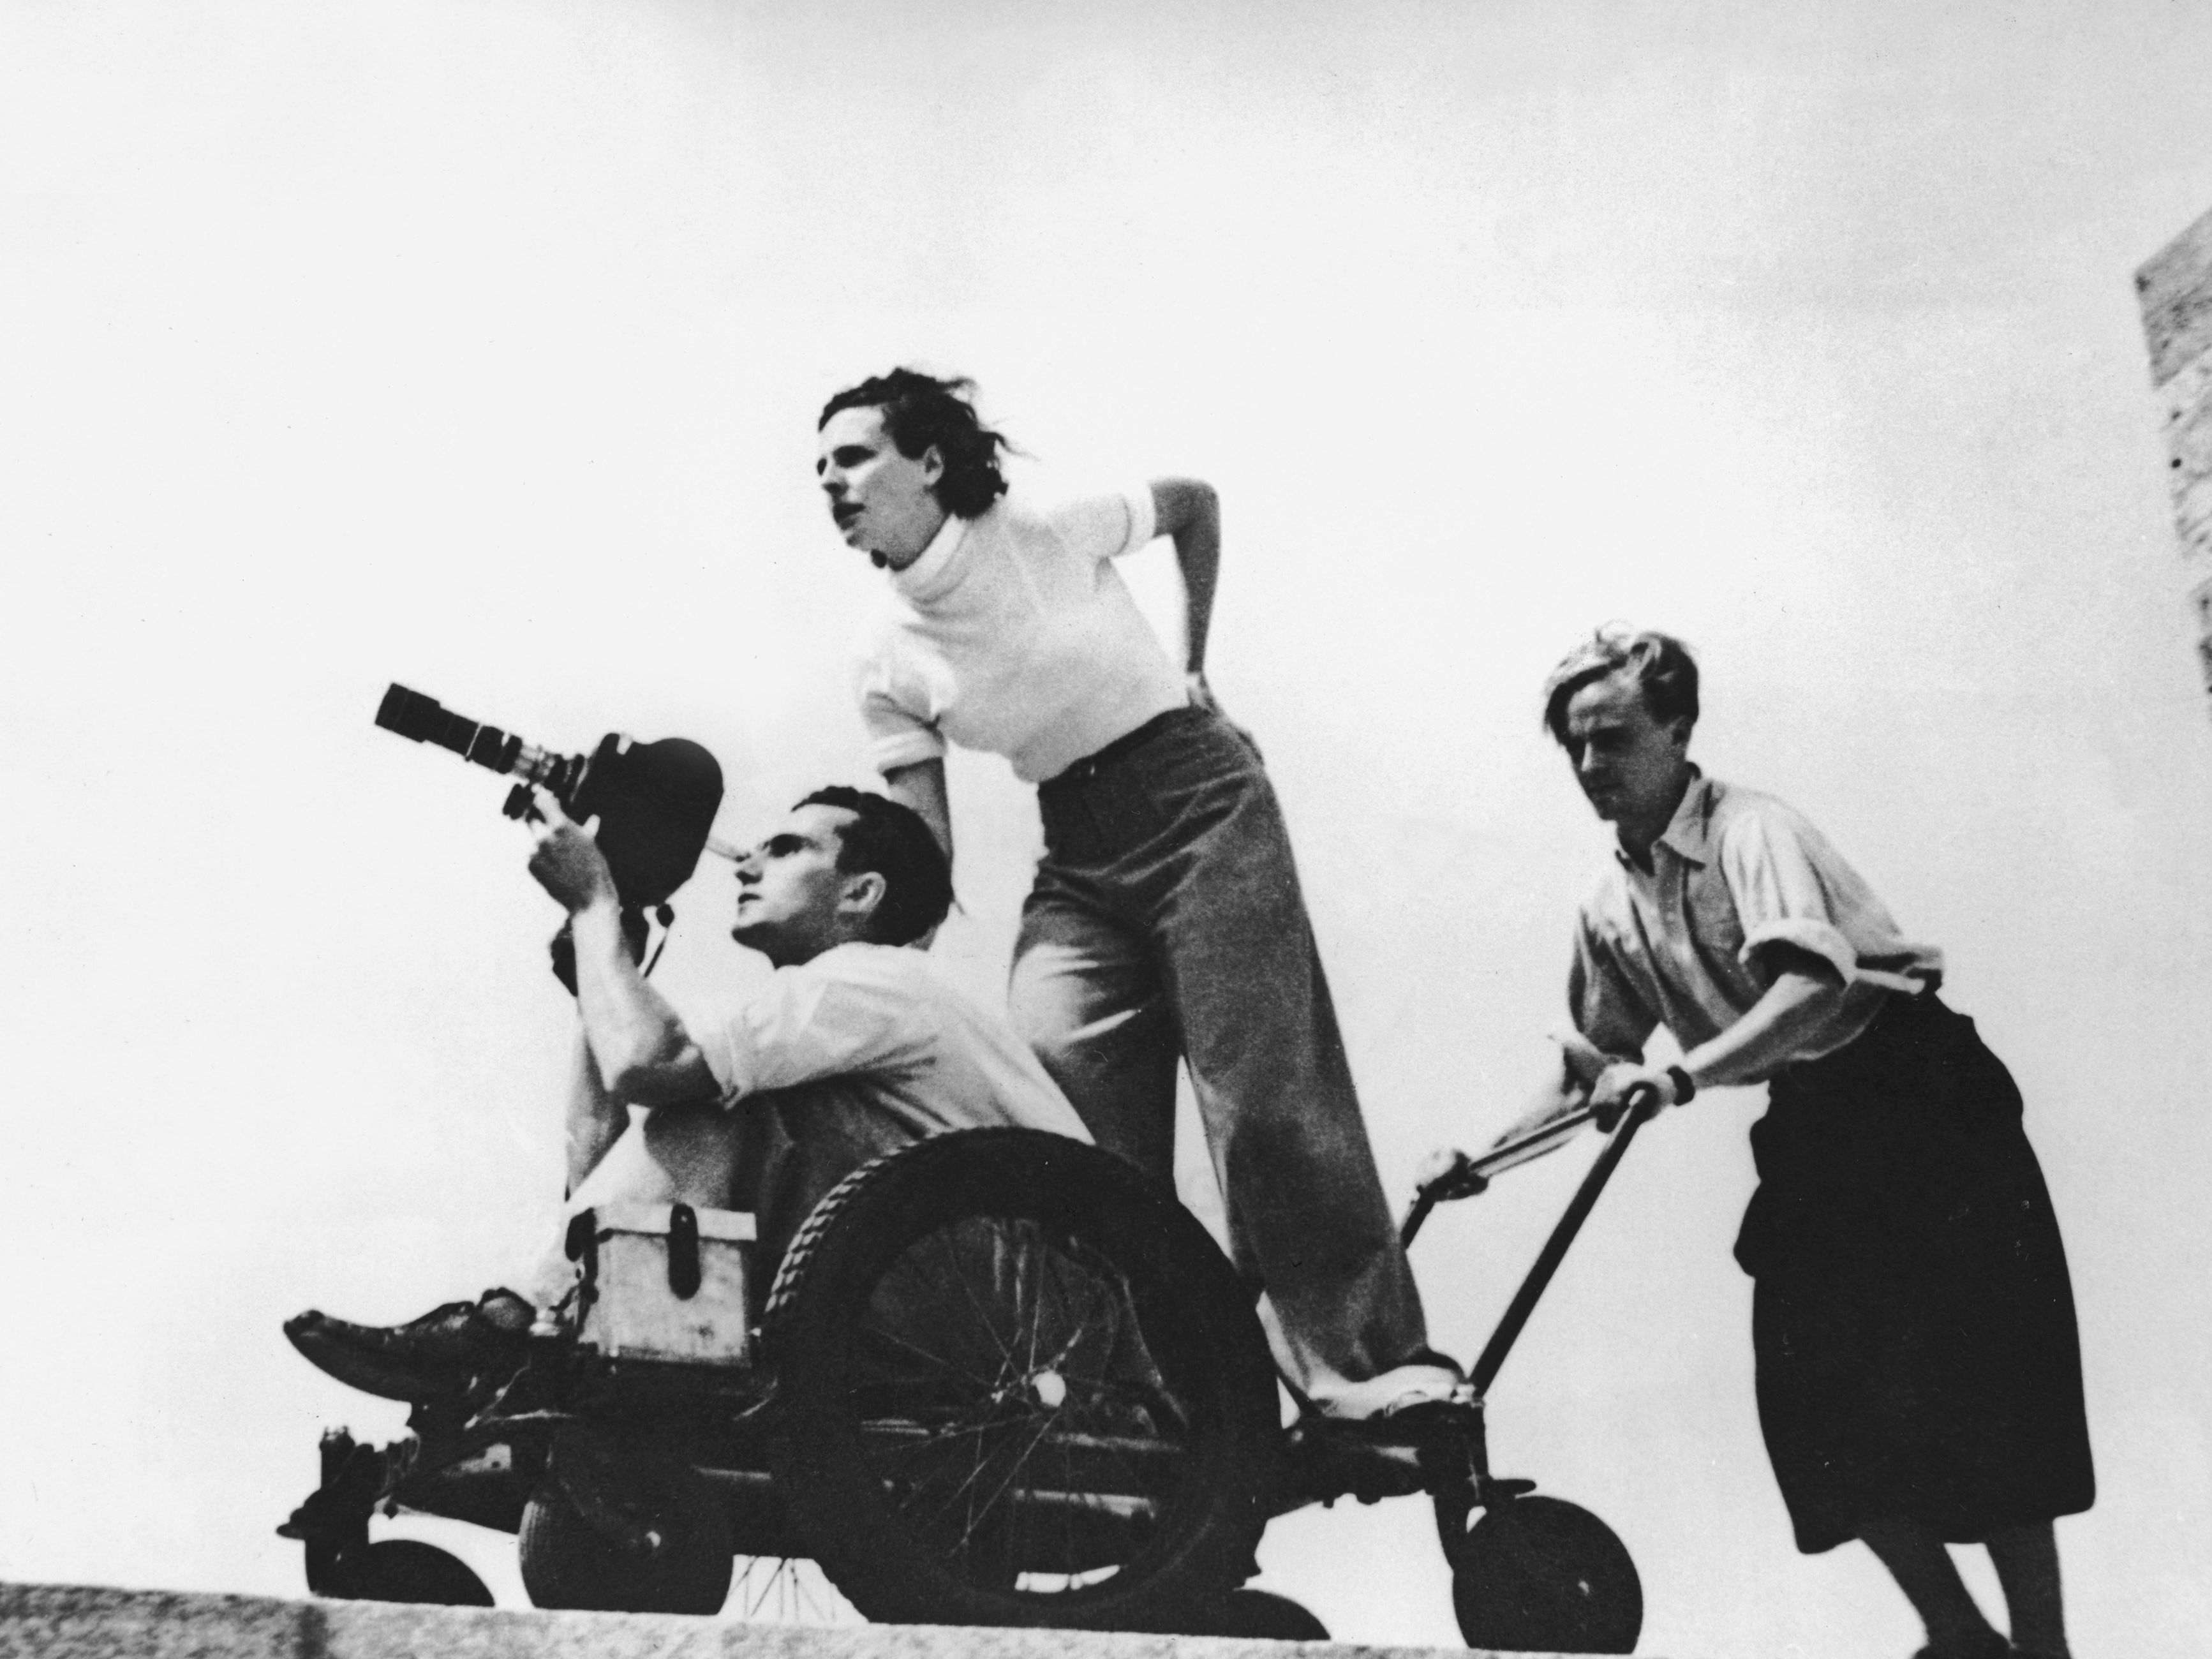 Amalie Helene Nude leni riefenstahl: moviemaker for the third reich